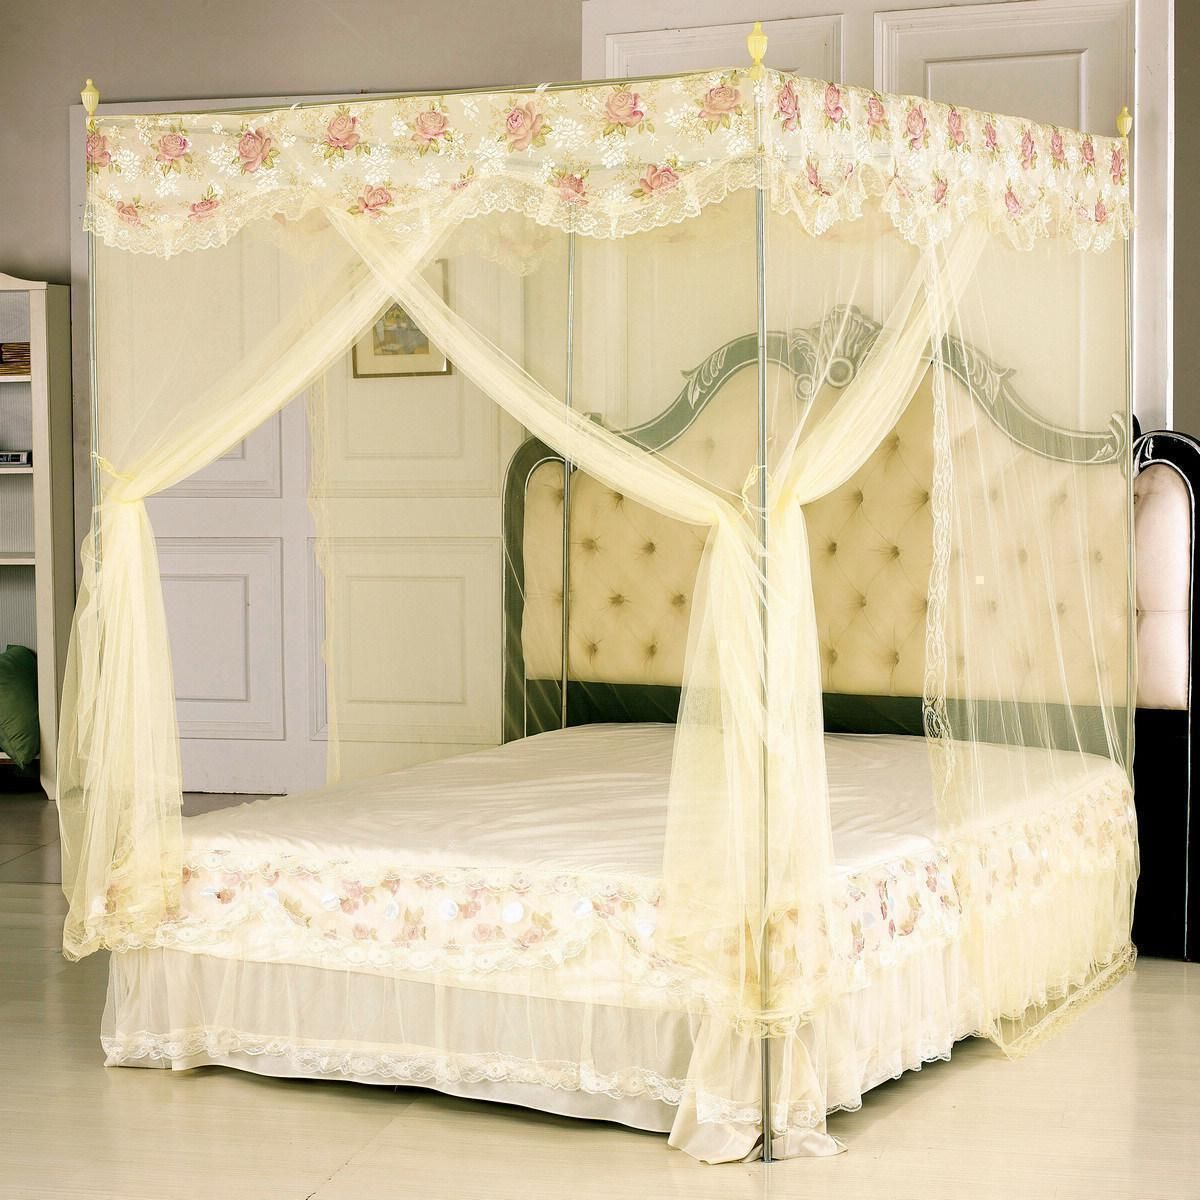 Modern Style Small Canopy Bed Design with White Wall Paint Color and Handsome Headboard Decor also & Modern Style Small Canopy Bed Design with White Wall Paint Color ...